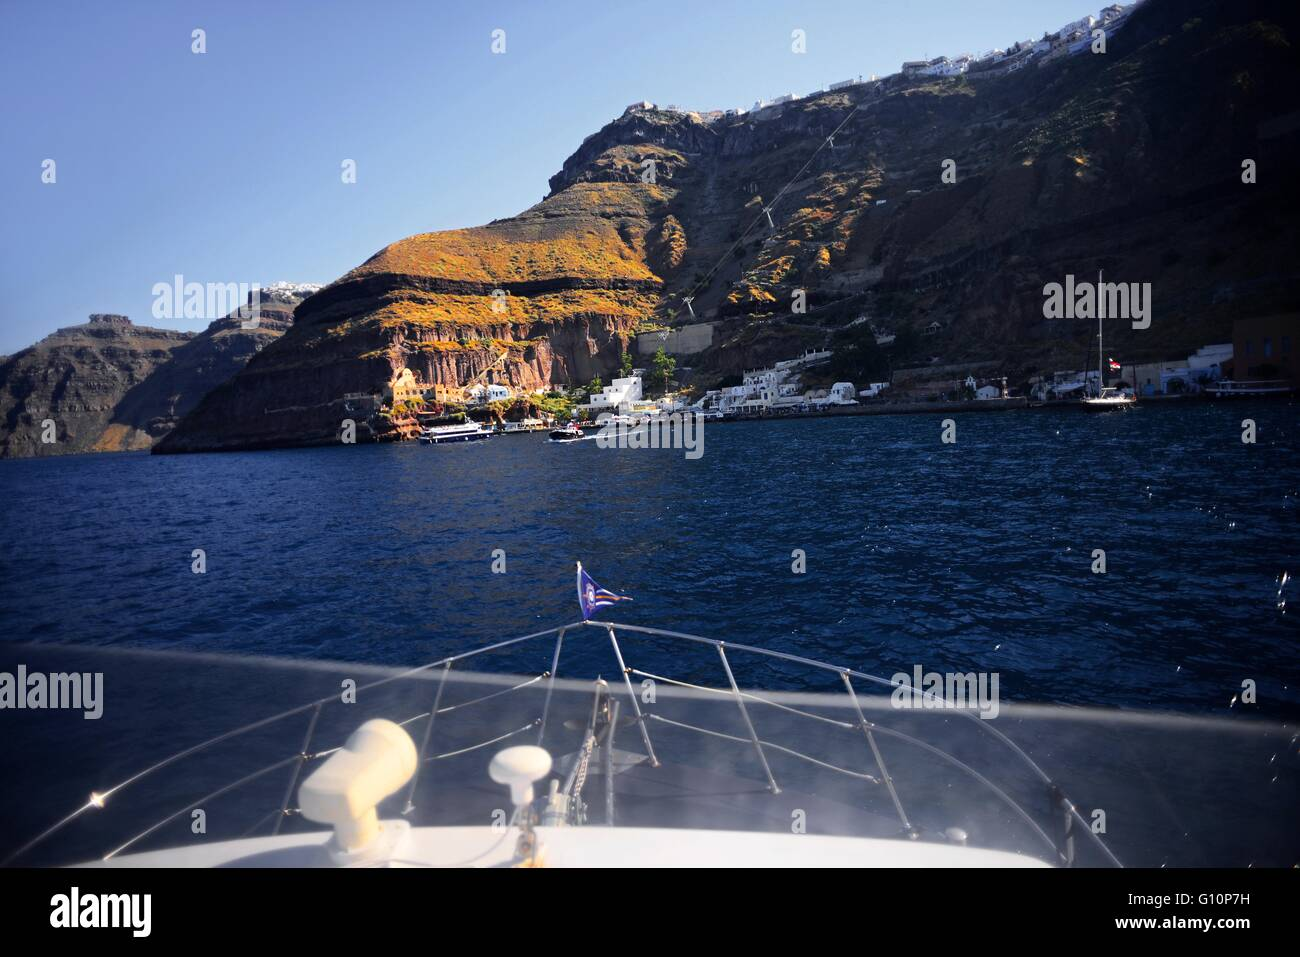 Arriving to Fira port on boat from cruise ship, Santorini, Greek Islands, Greece - Stock Image